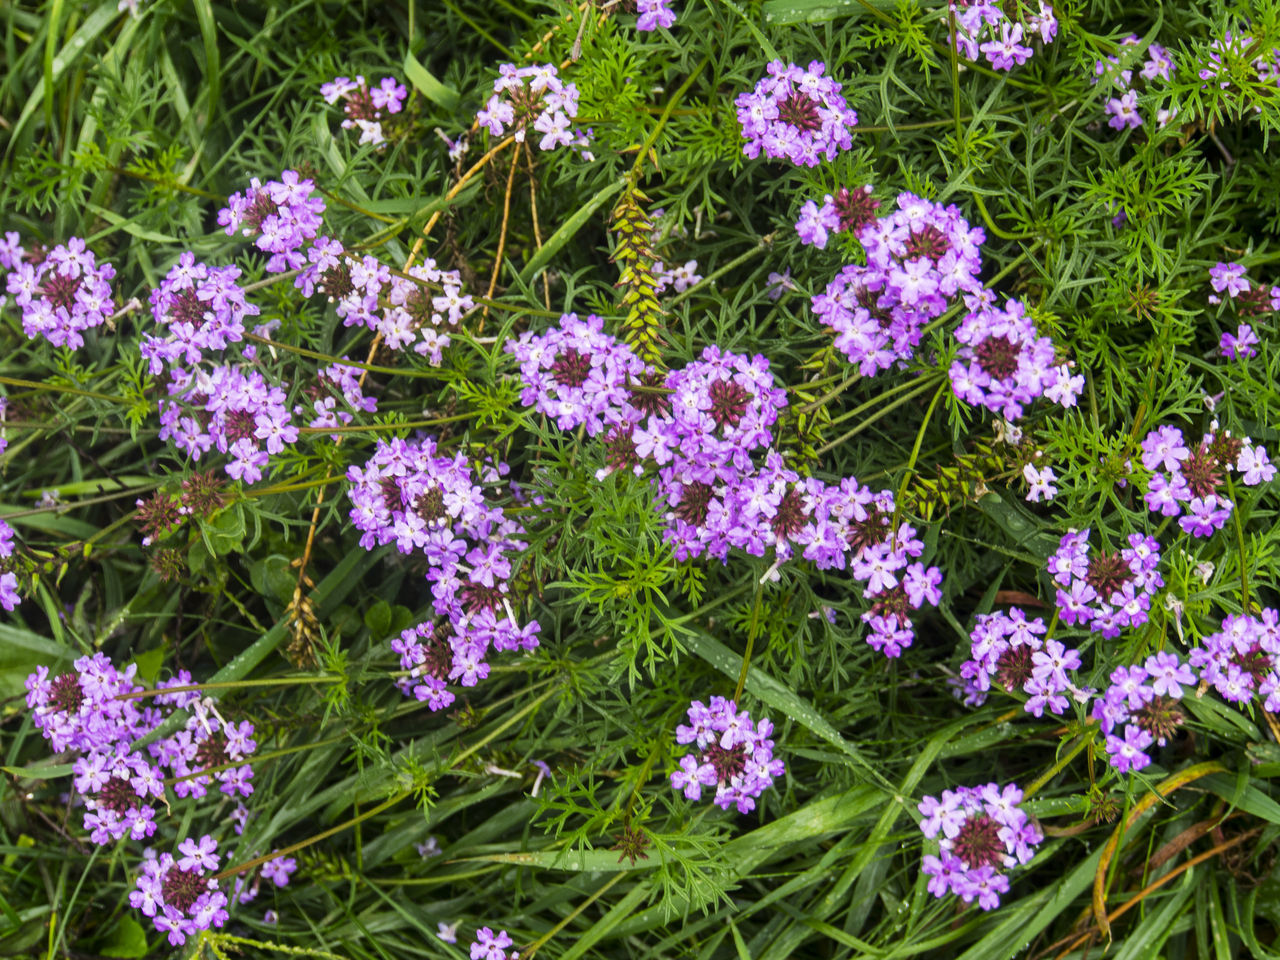 Lobularia maritima, common name sweet alyssum or sweet alison Alison Alyssum Beauty In Nature Blooming Botany Day Flower Flower Head Fragility Freshness Full Frame Green Color Growth High Angle View In Bloom Lobularia Maritima Nature Outdoors Petal Pink Color Plant Purple Springtime Sweet